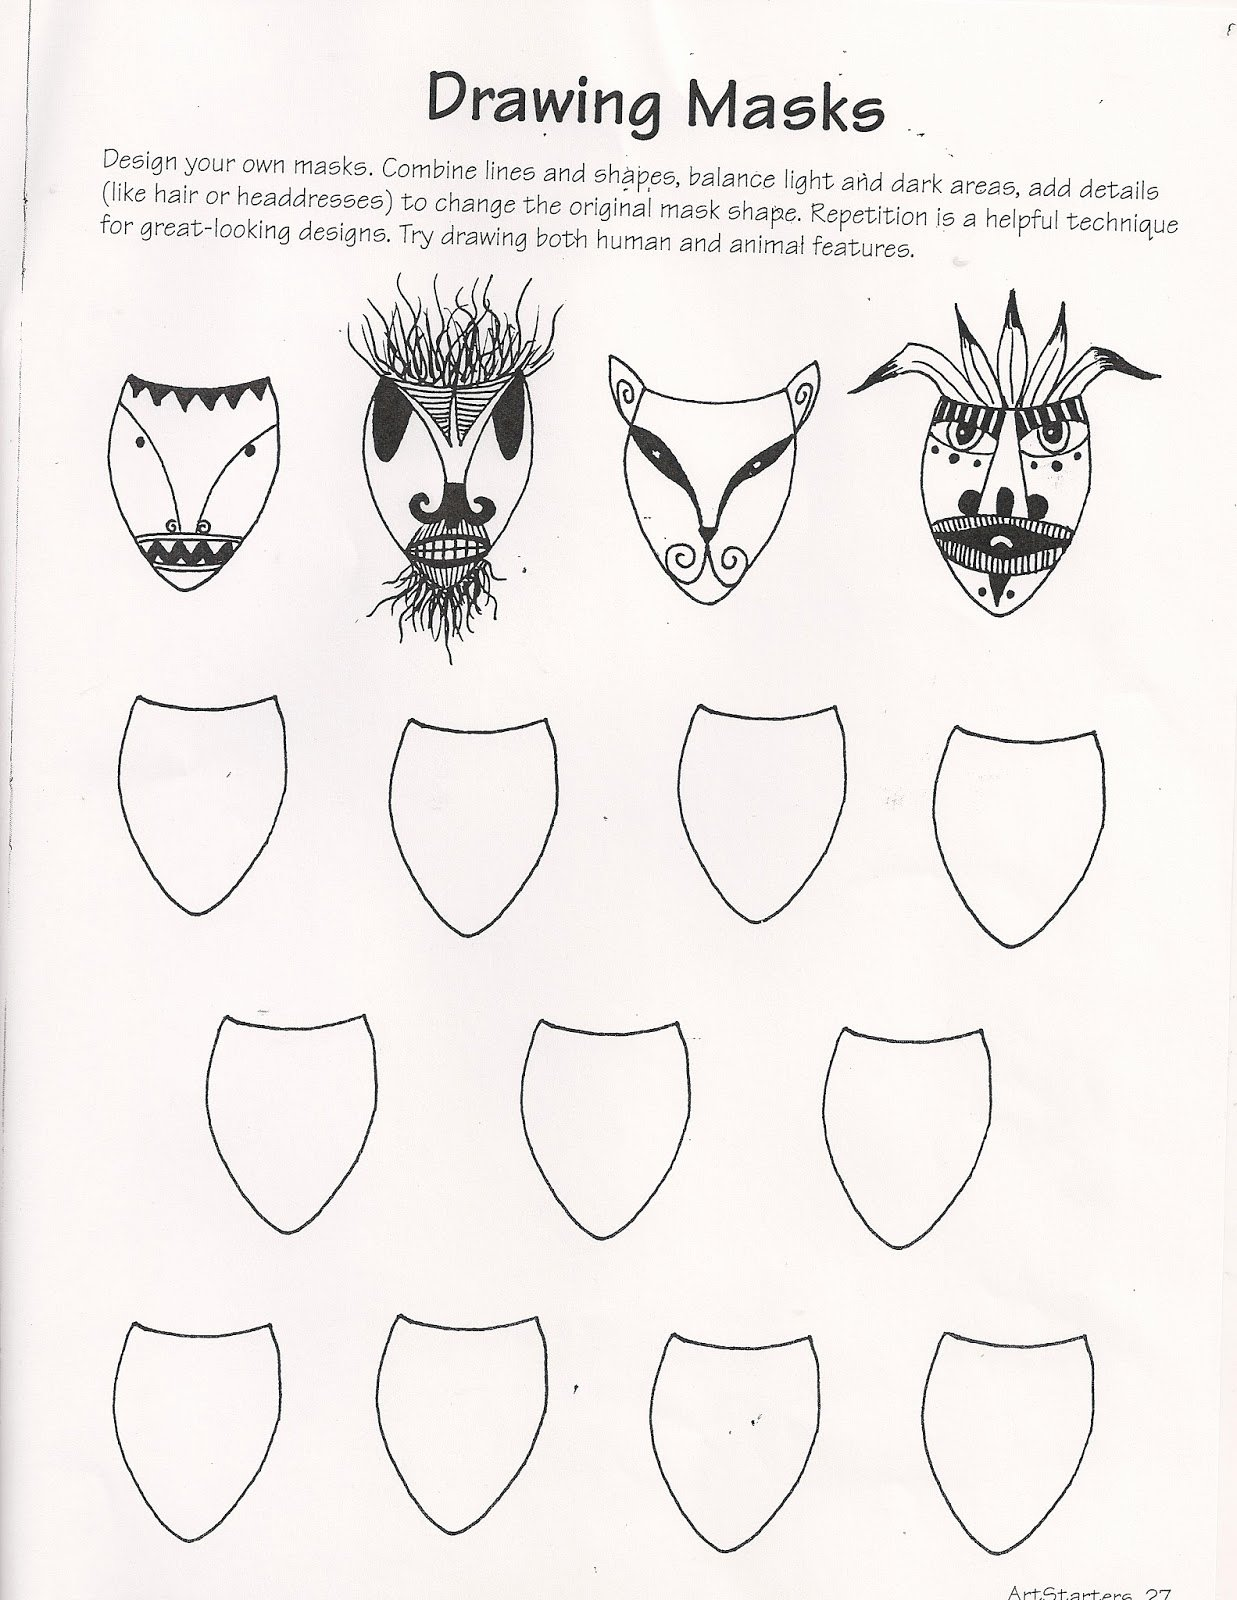 Inspired Educators Inc Worksheet Answers Unique No Corner Suns Drawing Masks Another Substitute Lesson